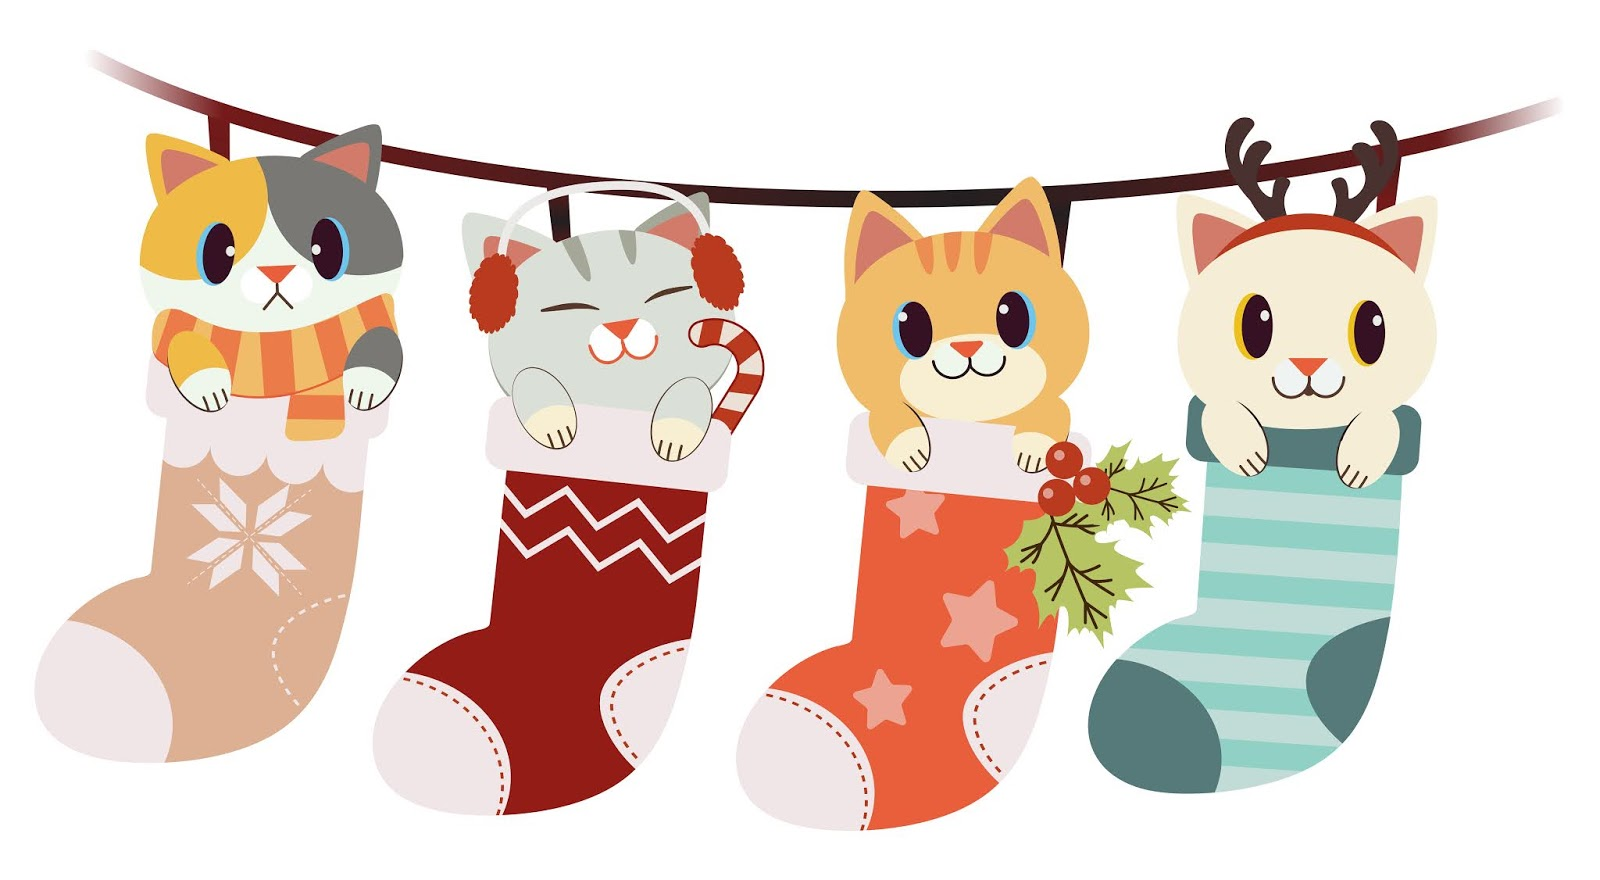 Collection Cute Cat Big Sock Set Christmas Winter Theme Free Download Vector CDR, AI, EPS and PNG Formats